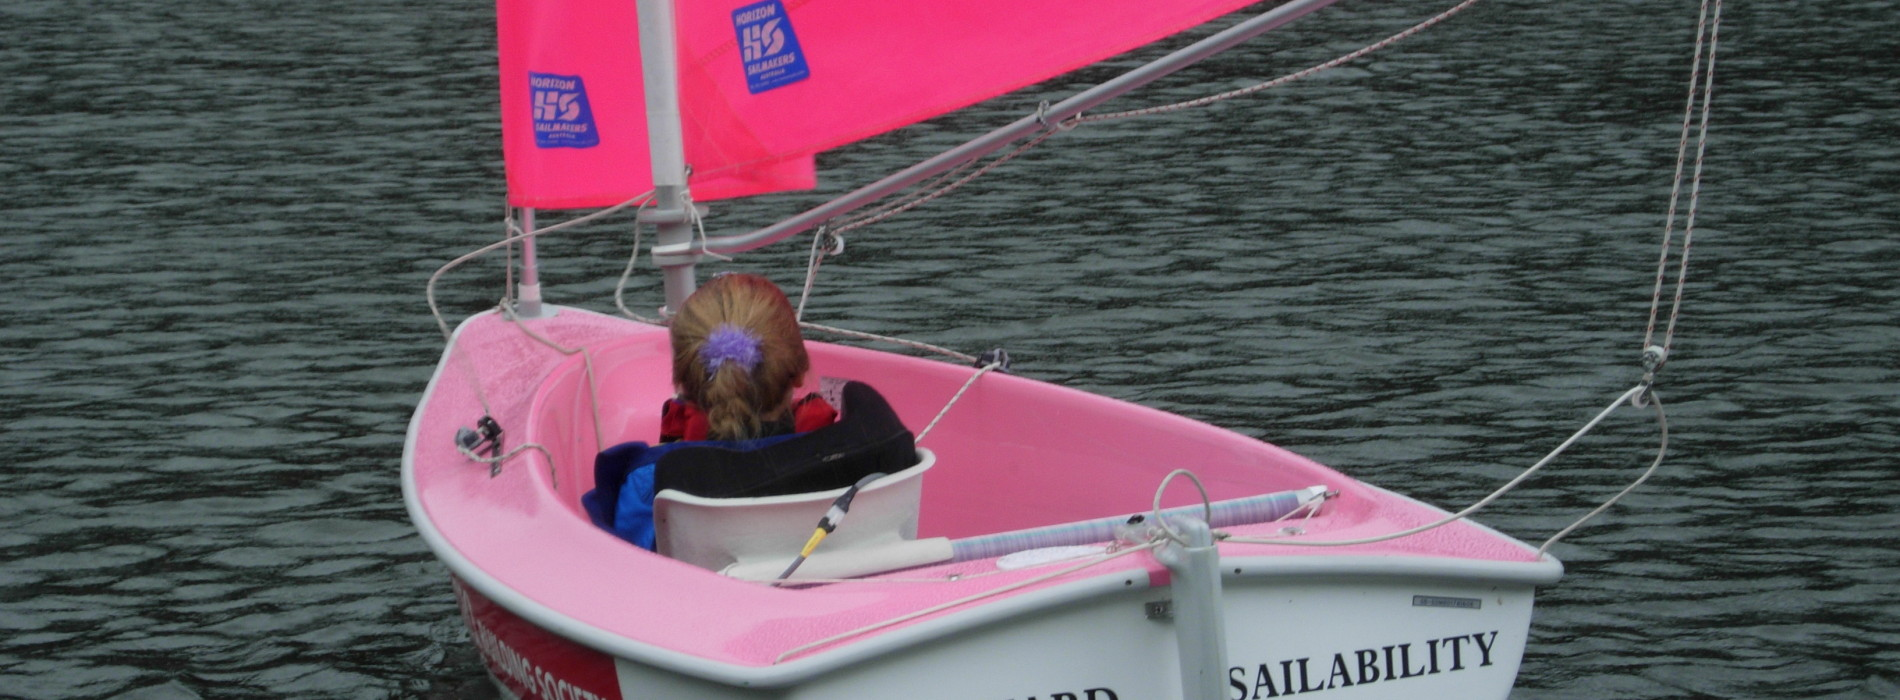 Accessible sailing with Rudyard Sailability